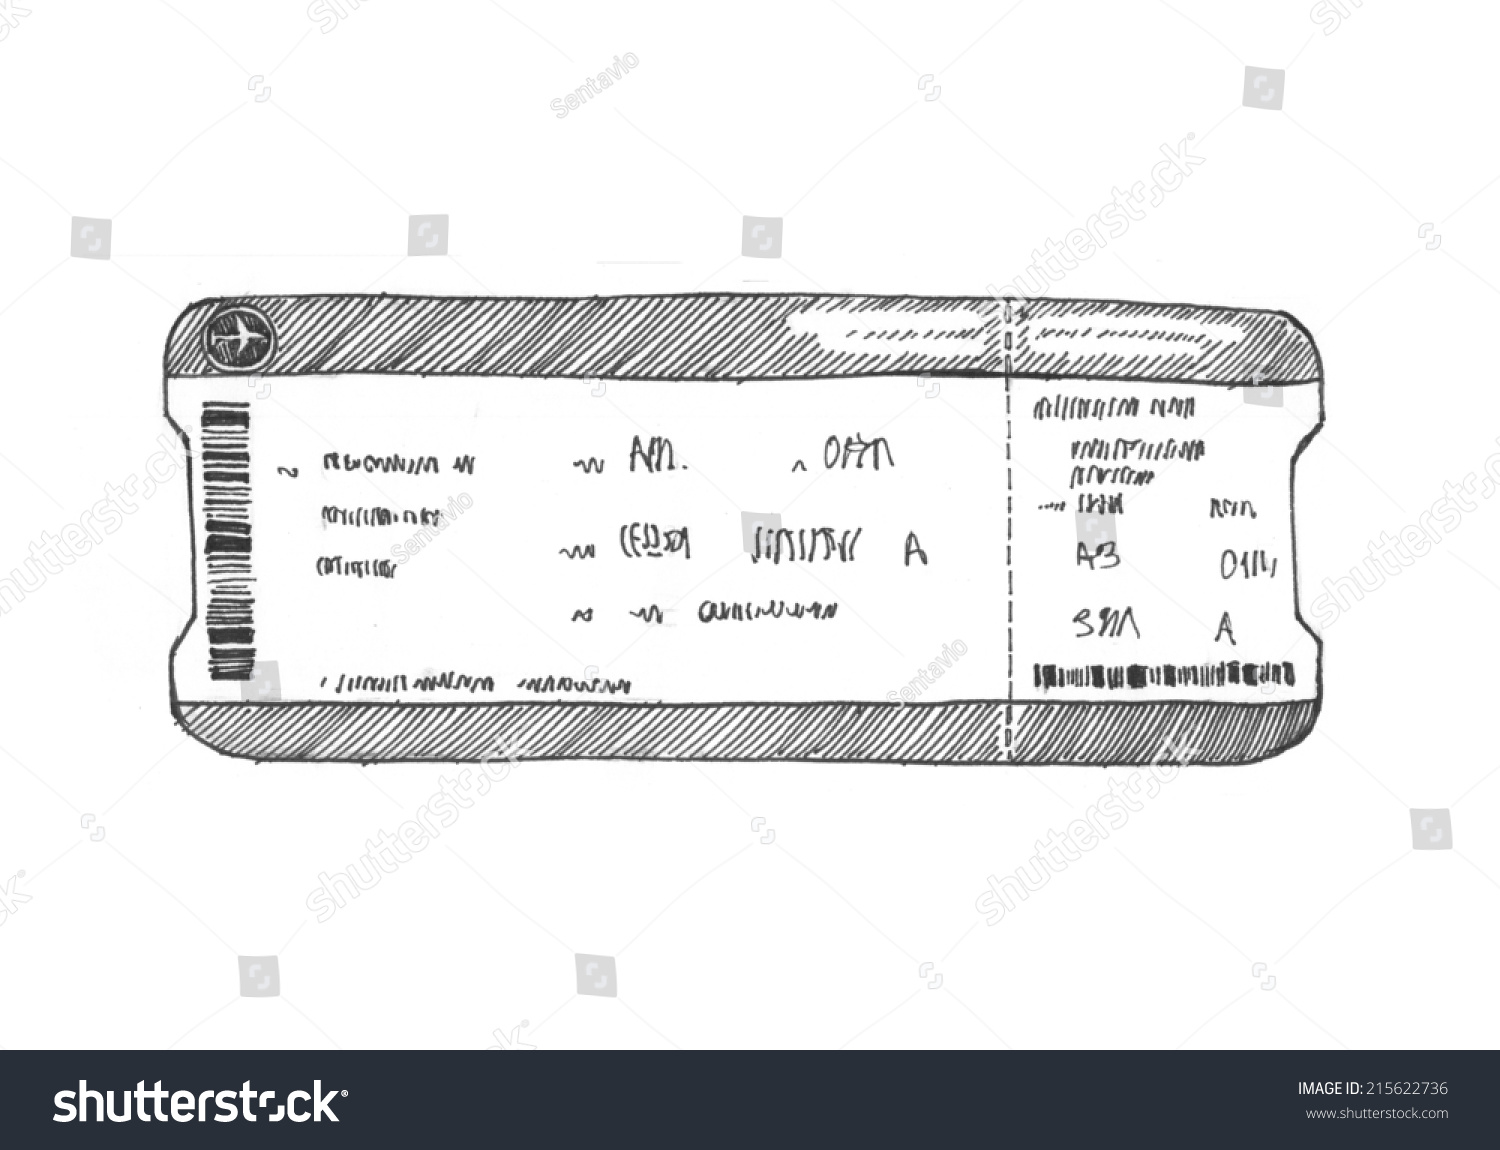 engraving style hatching pen pencil painting stock illustration engraving style hatching pen pencil painting illustration aircraft airline electronic ticket boarding pass image engrave